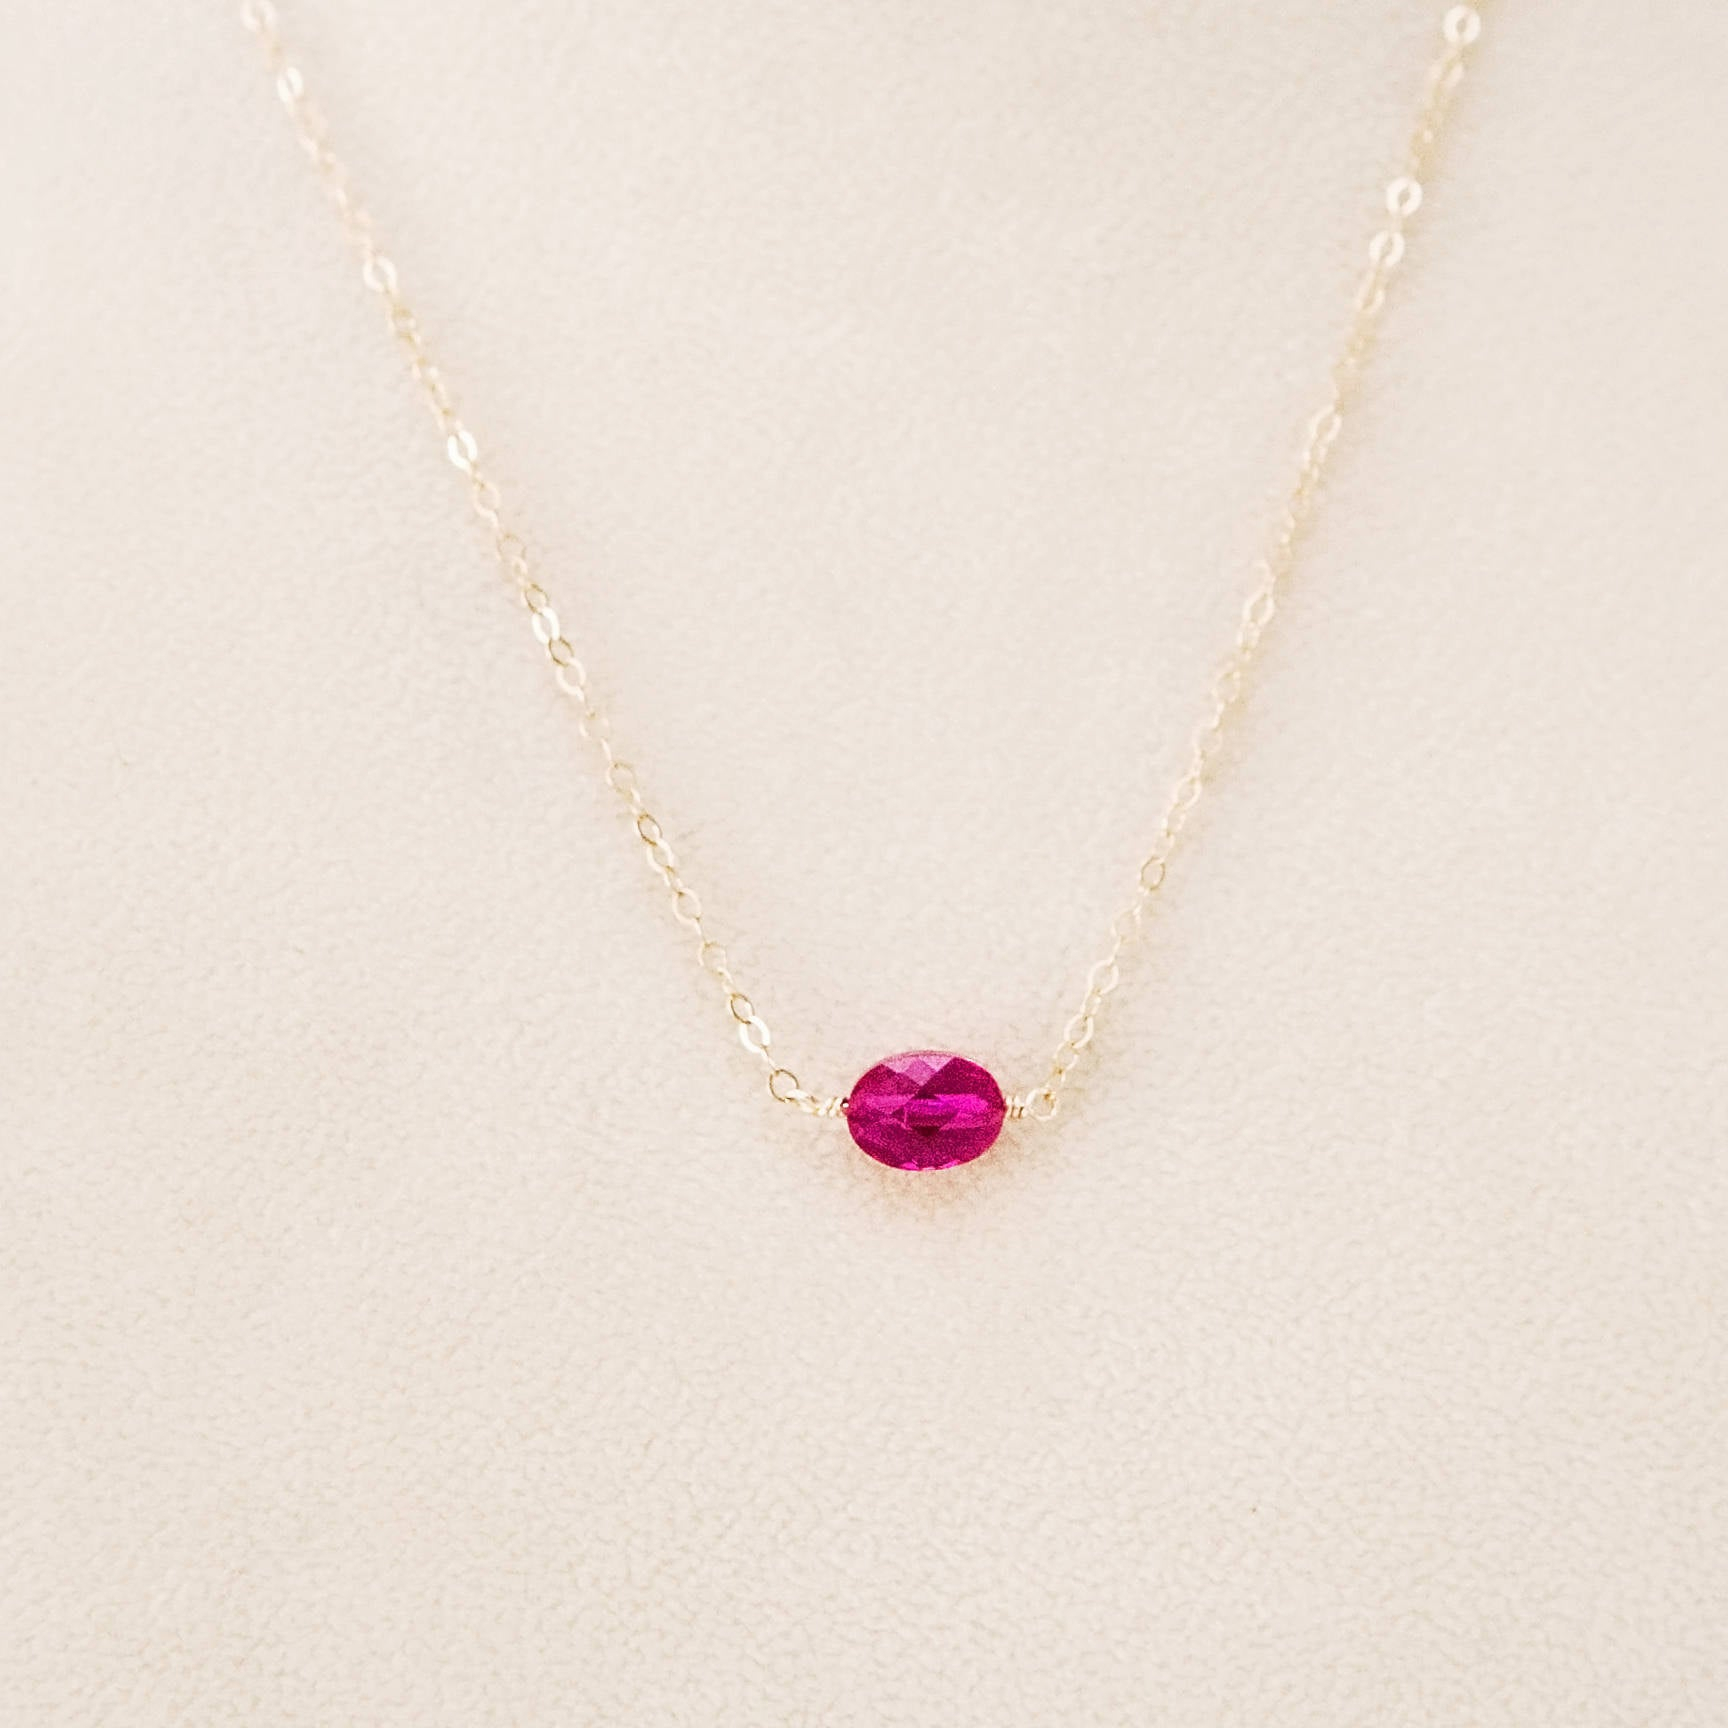 Ruby Necklace Ruby Pendant Ruby Crystal Necklace Ruby Crystal Pendant Ruby Oval July Birthstone Layering Pendant Gift For Her Gifts Under 50 With Current July Droplet Pendant, Synthetic Ruby Necklaces (View 5 of 25)